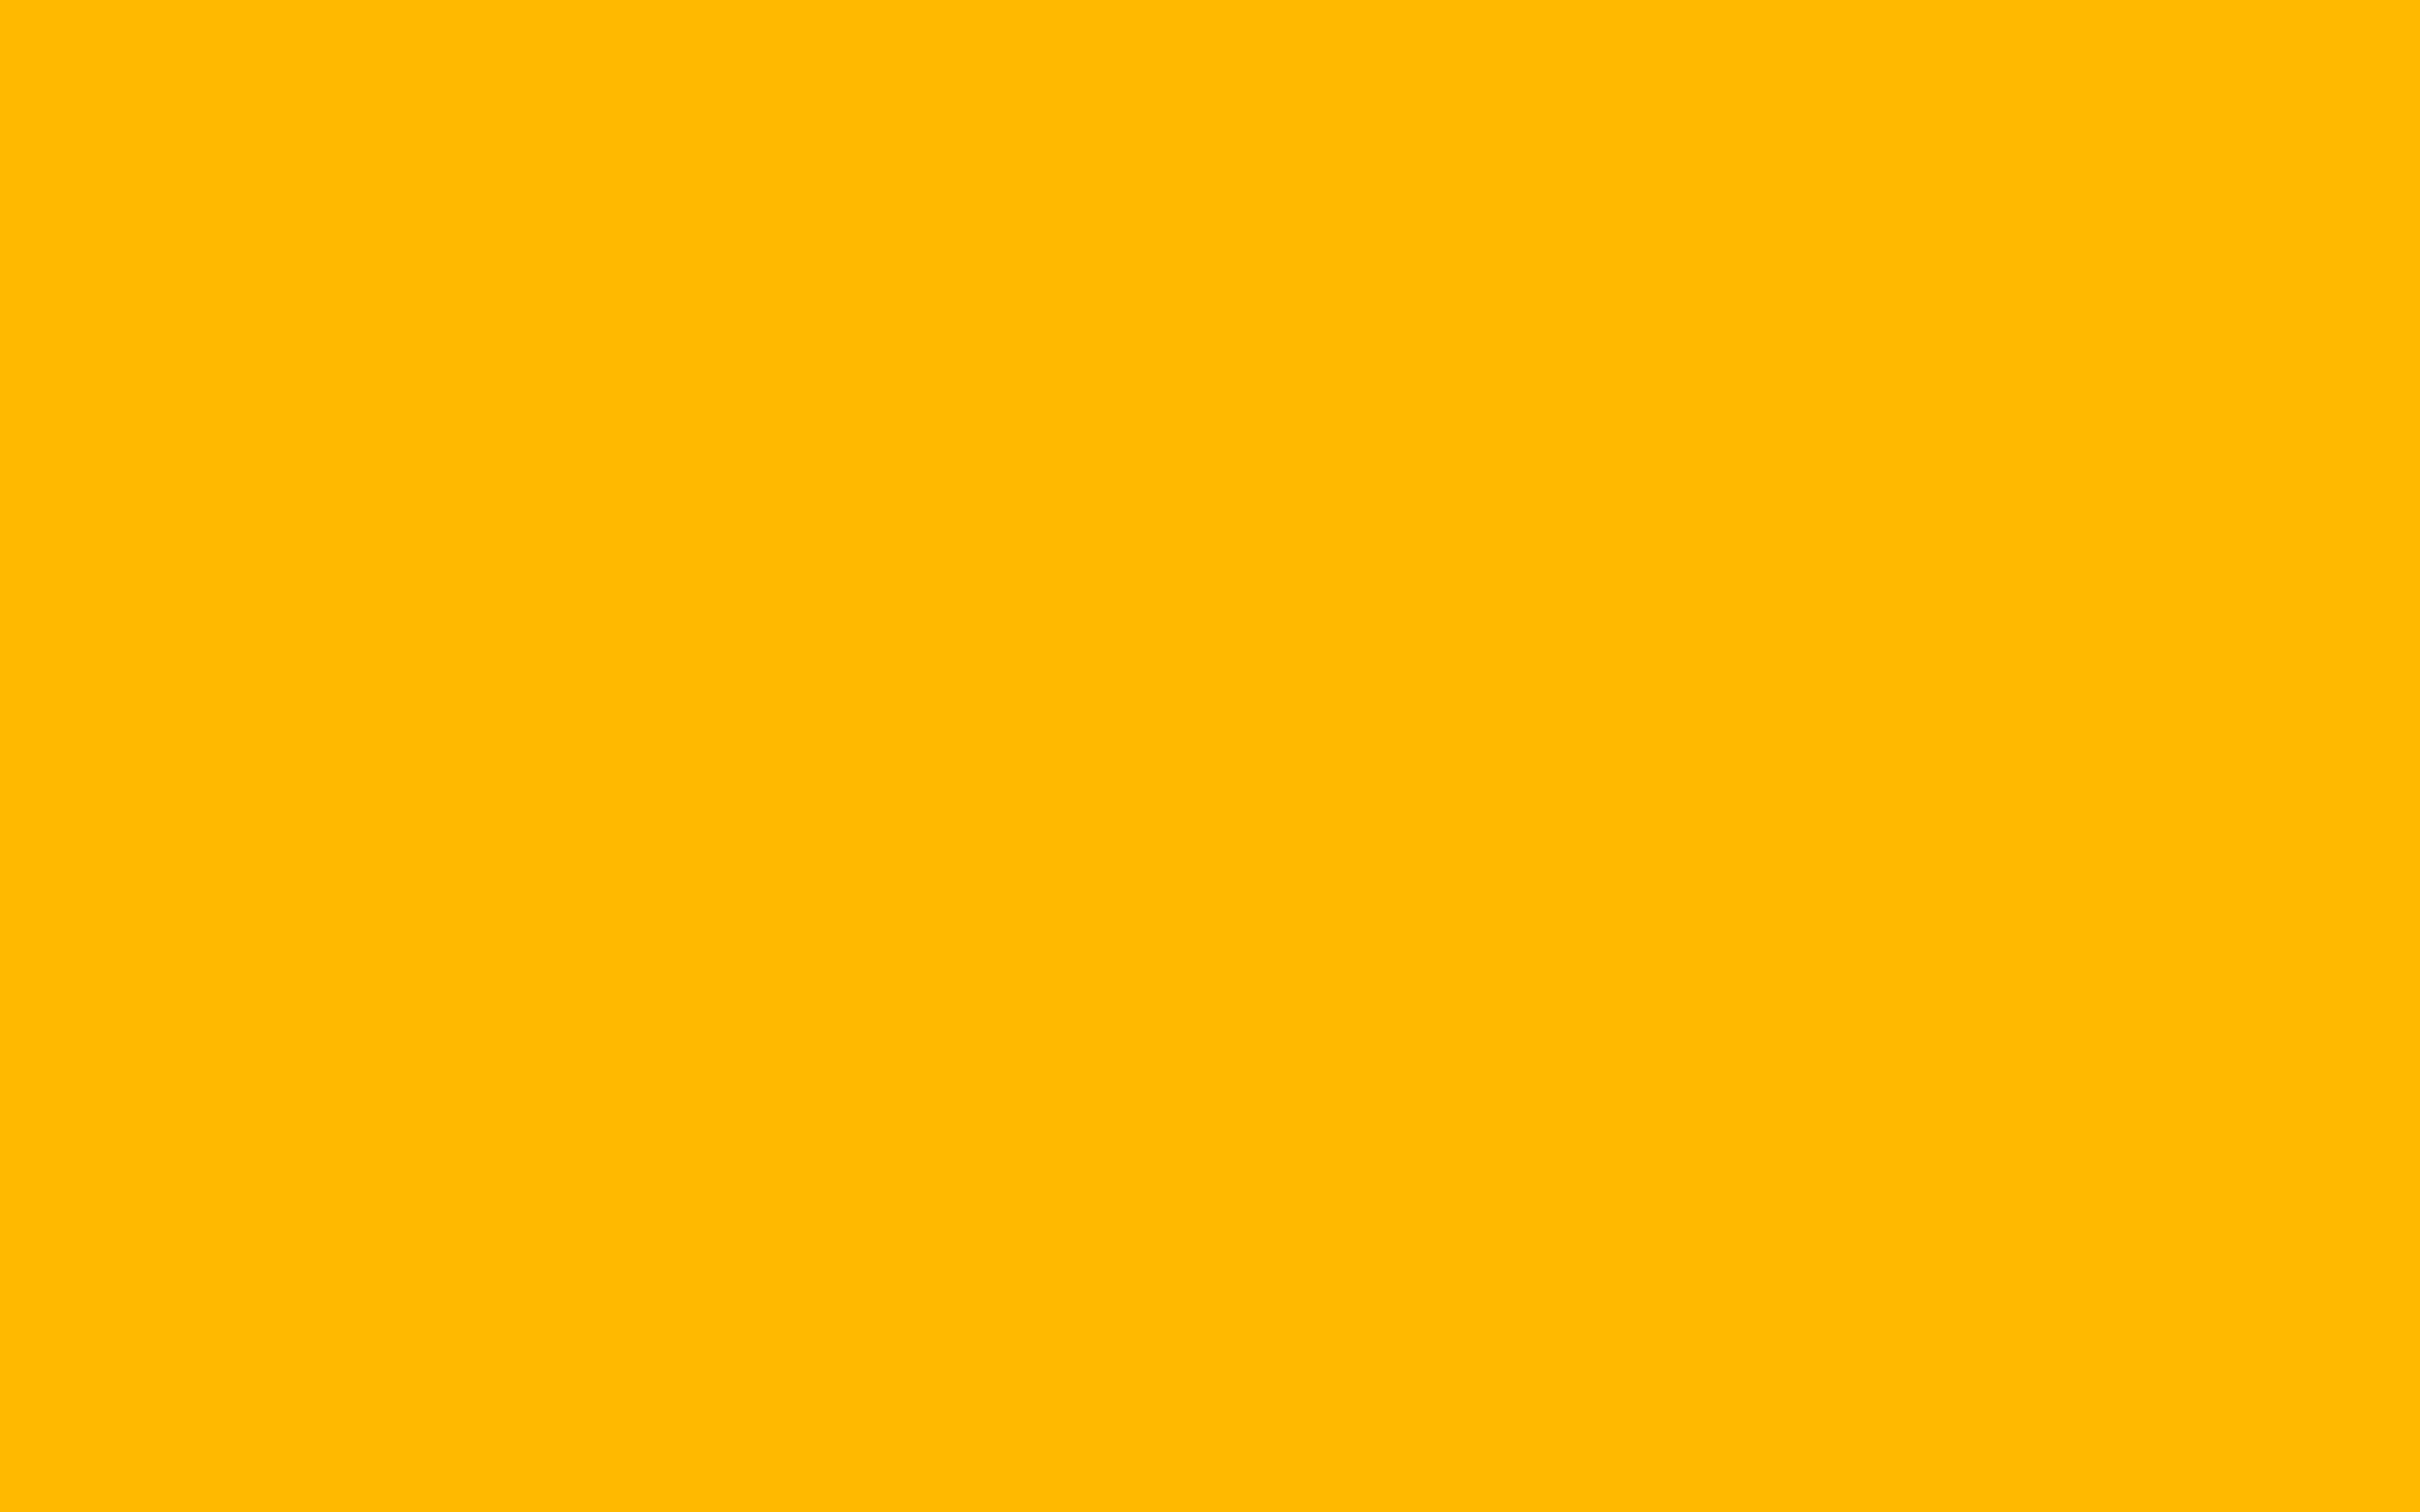 2560x1600 Selective Yellow Solid Color Background